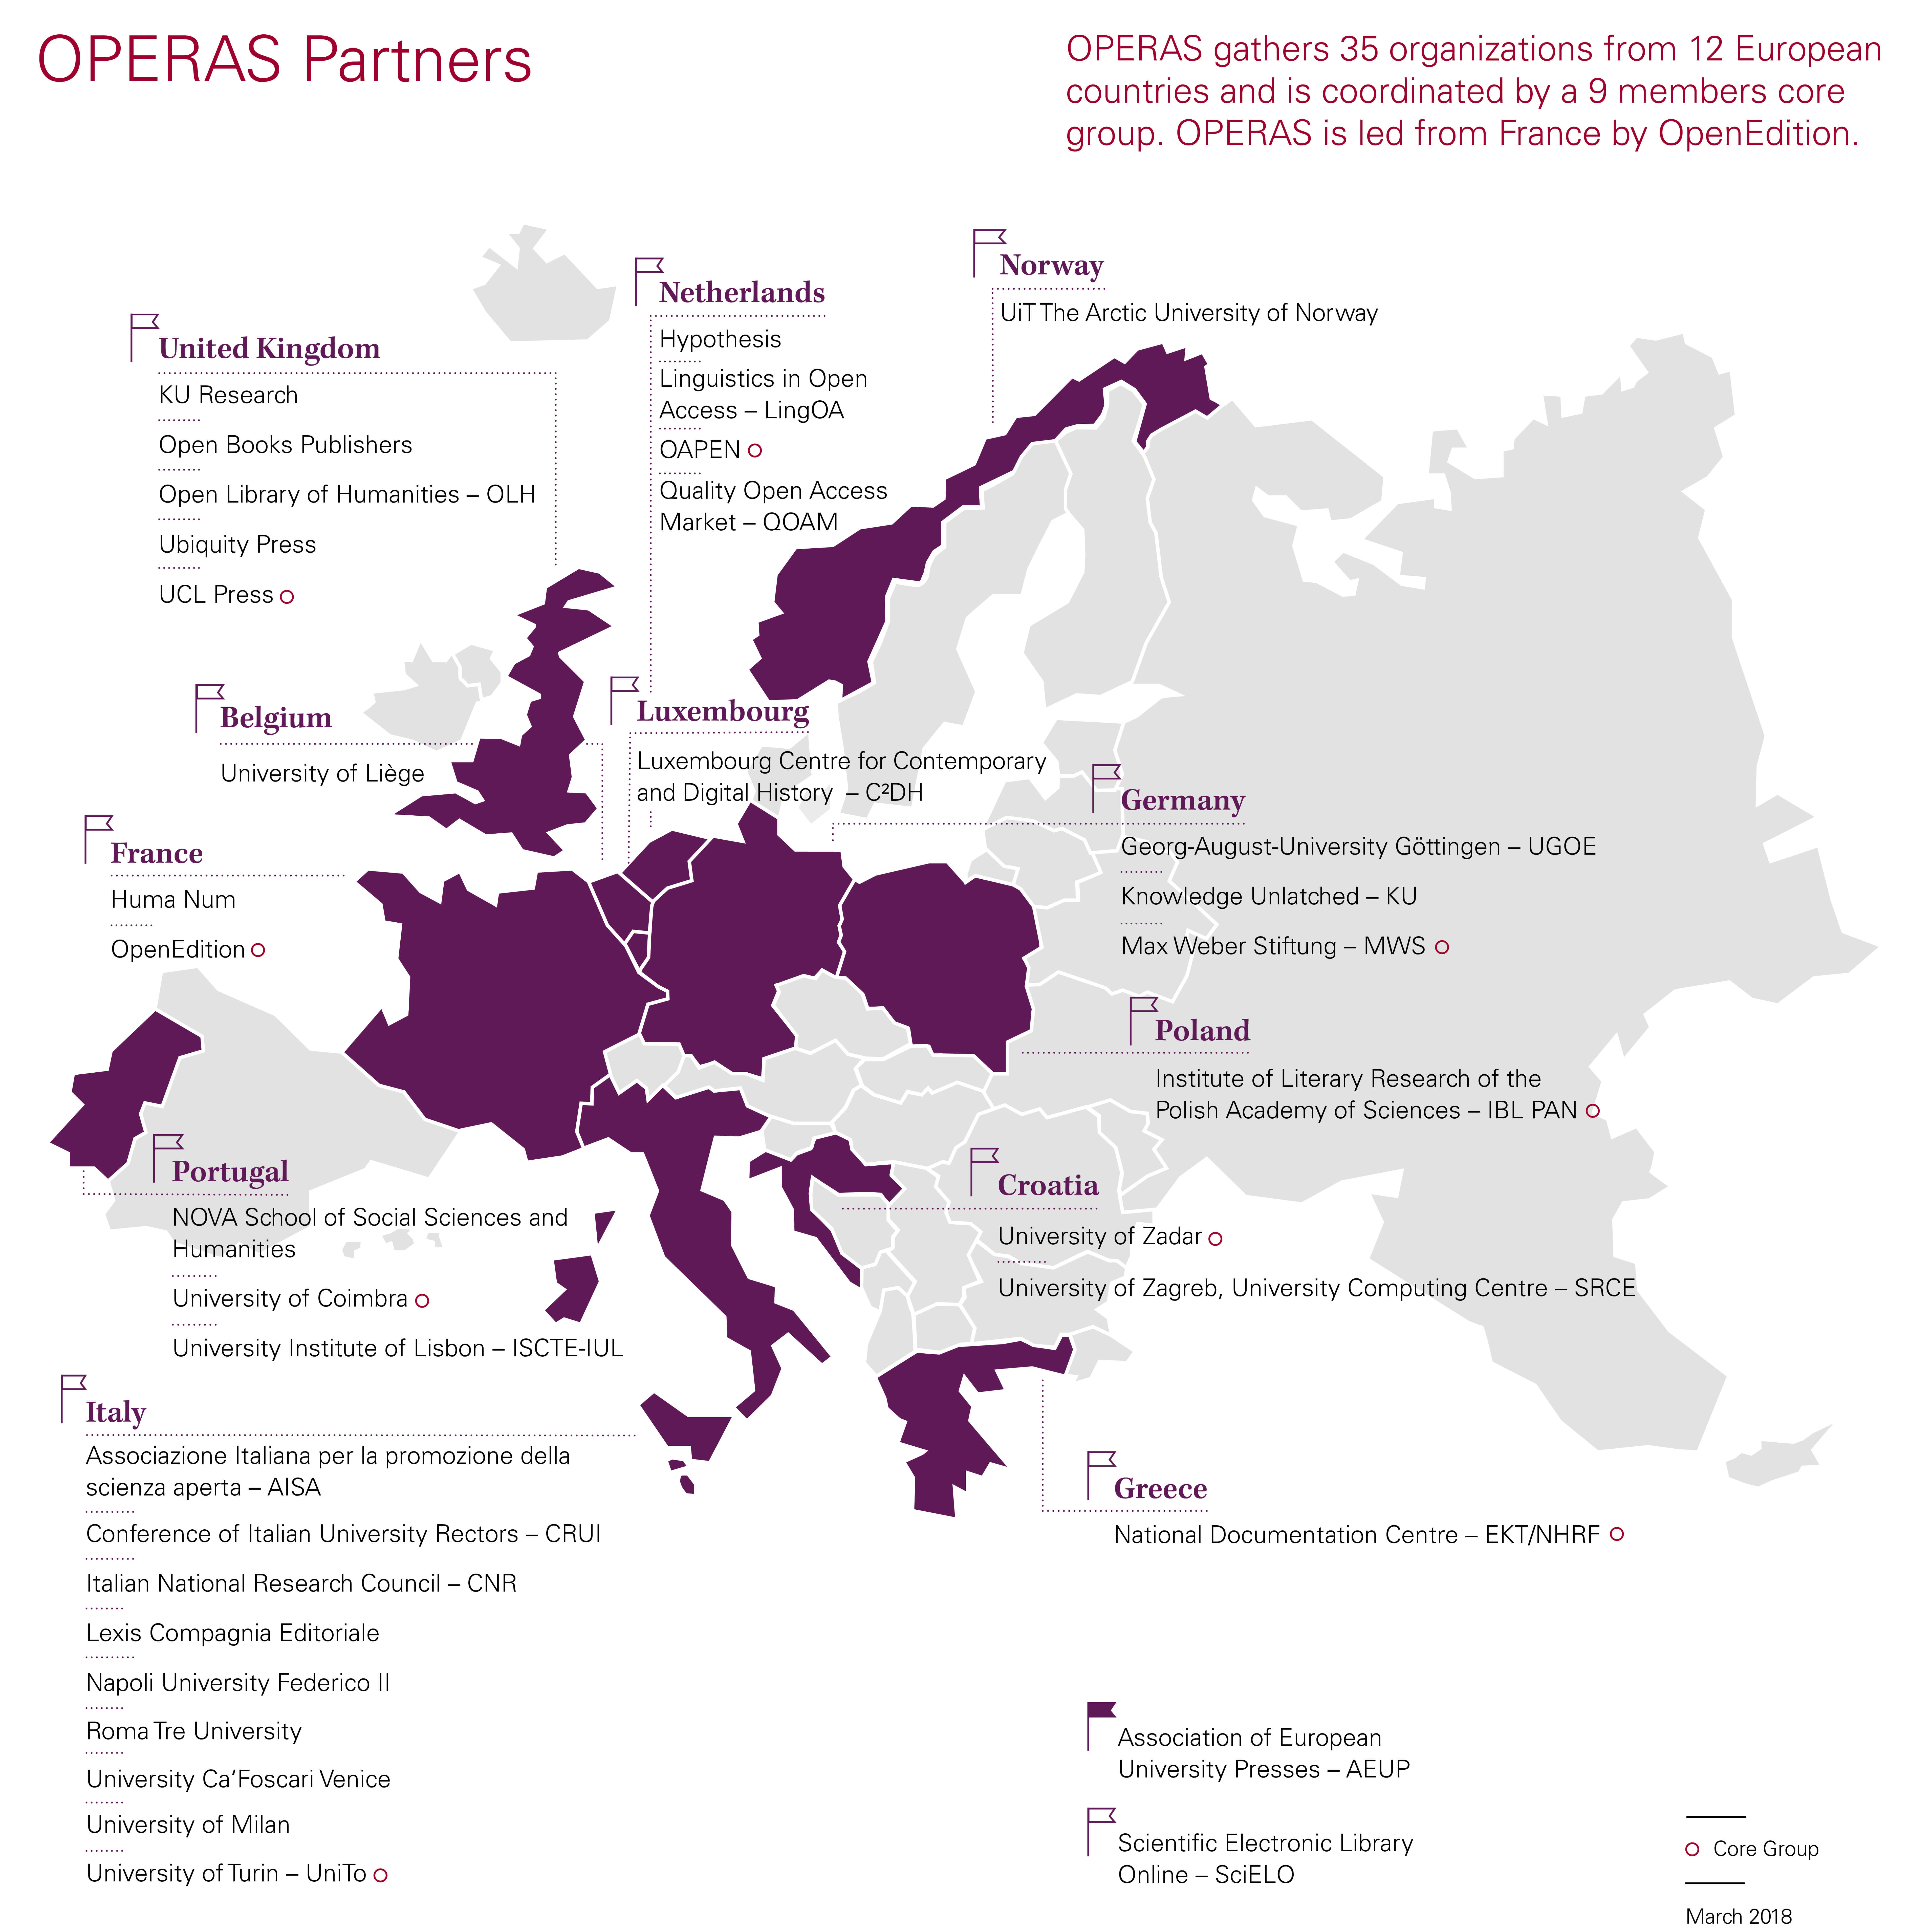 OPERAS Map - March 2018